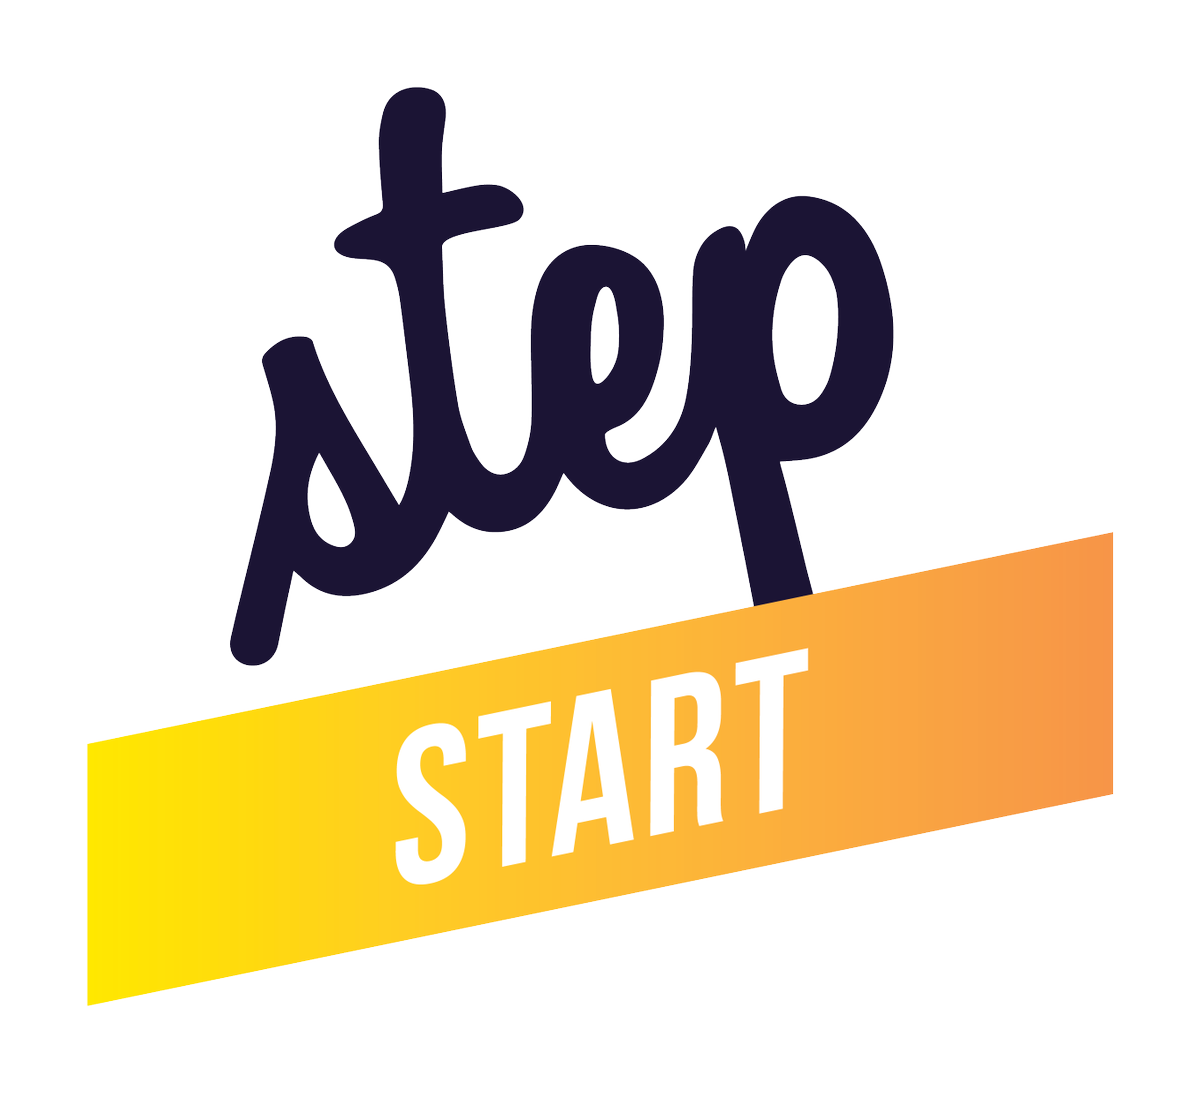 #Startups Would love to see you on Feb 13-14 at mentorship sessions at @stepconference #STEP2019. Apply here https://t.co/IFR4byM1Sm https://t.co/53XE1b99Ch